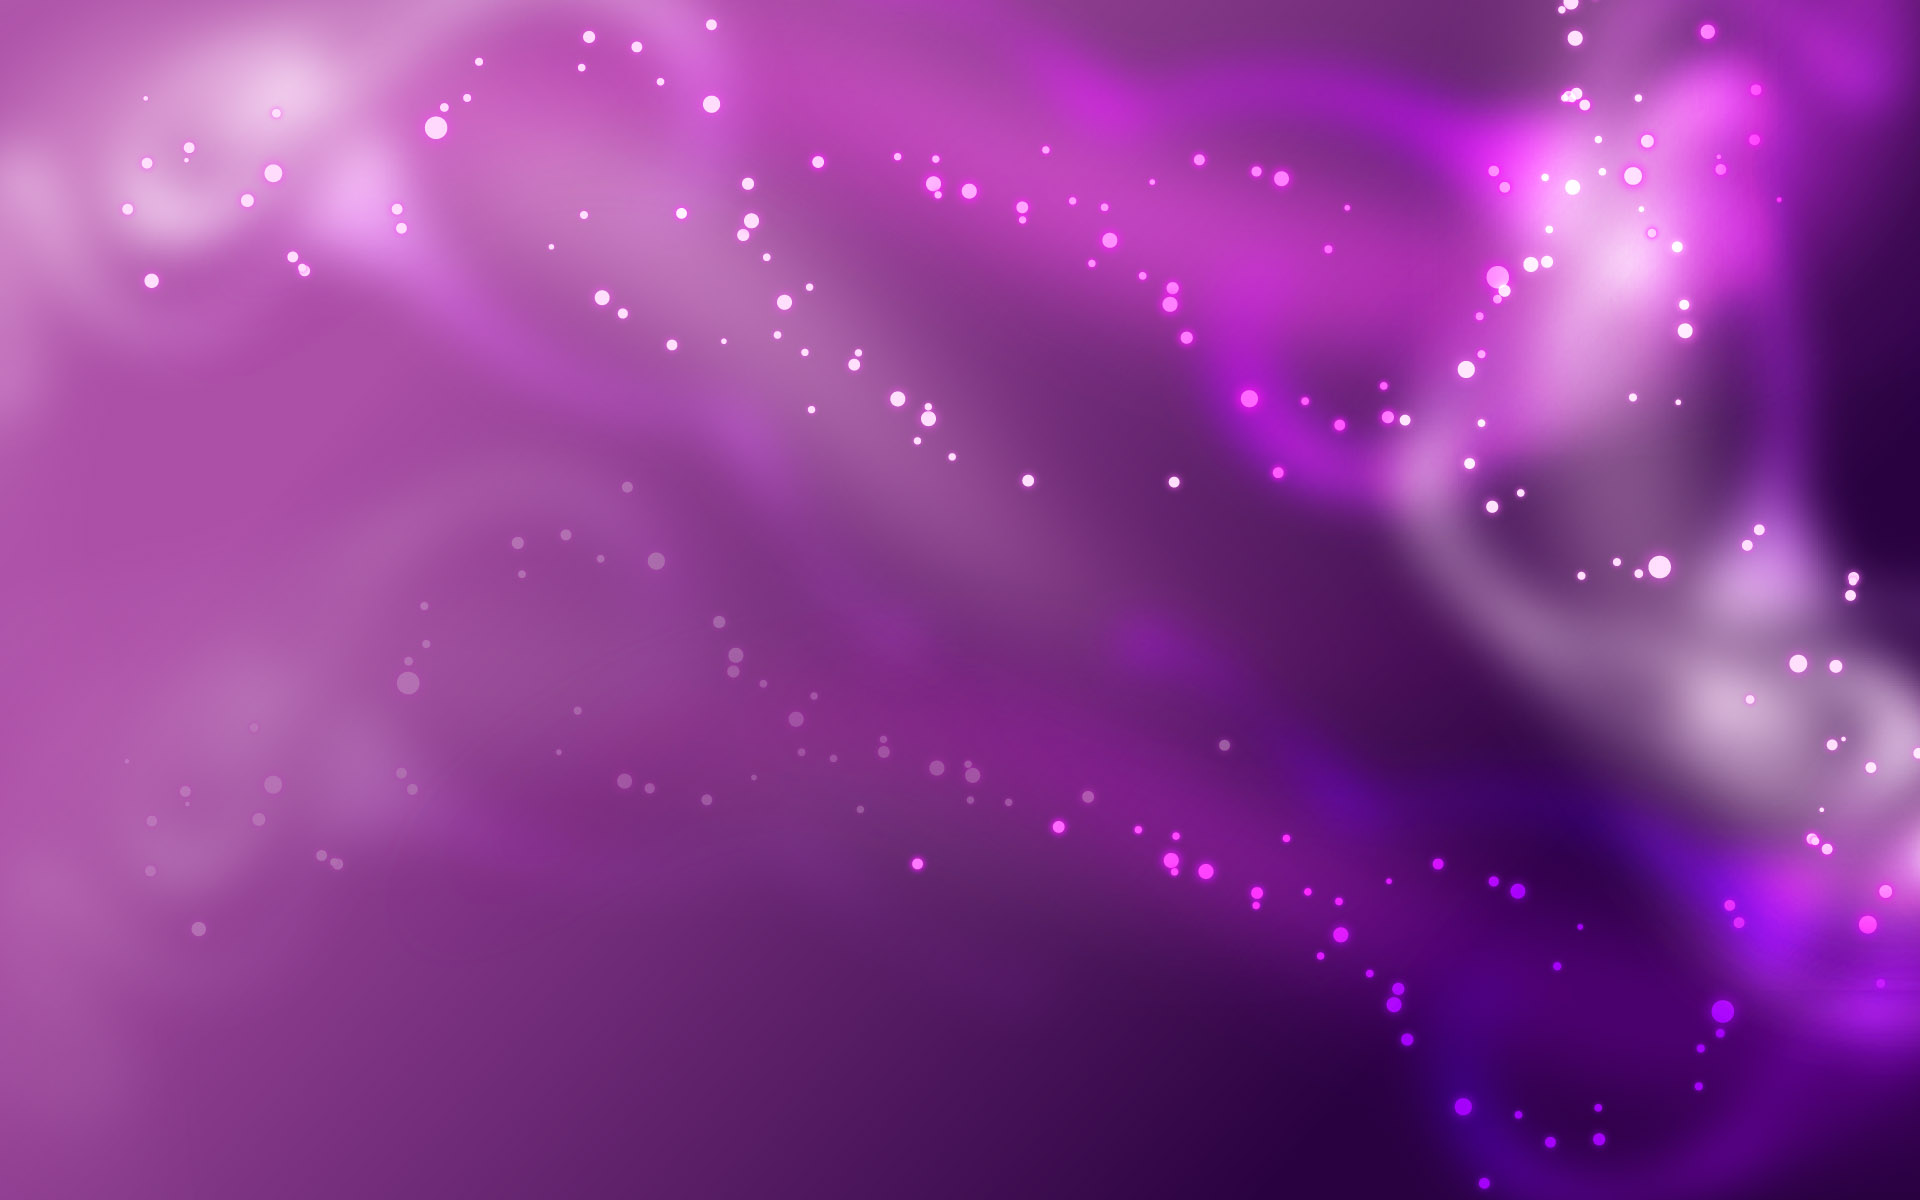 Purple Free 3d Abstract Wallpaper Desktop Wallpaper